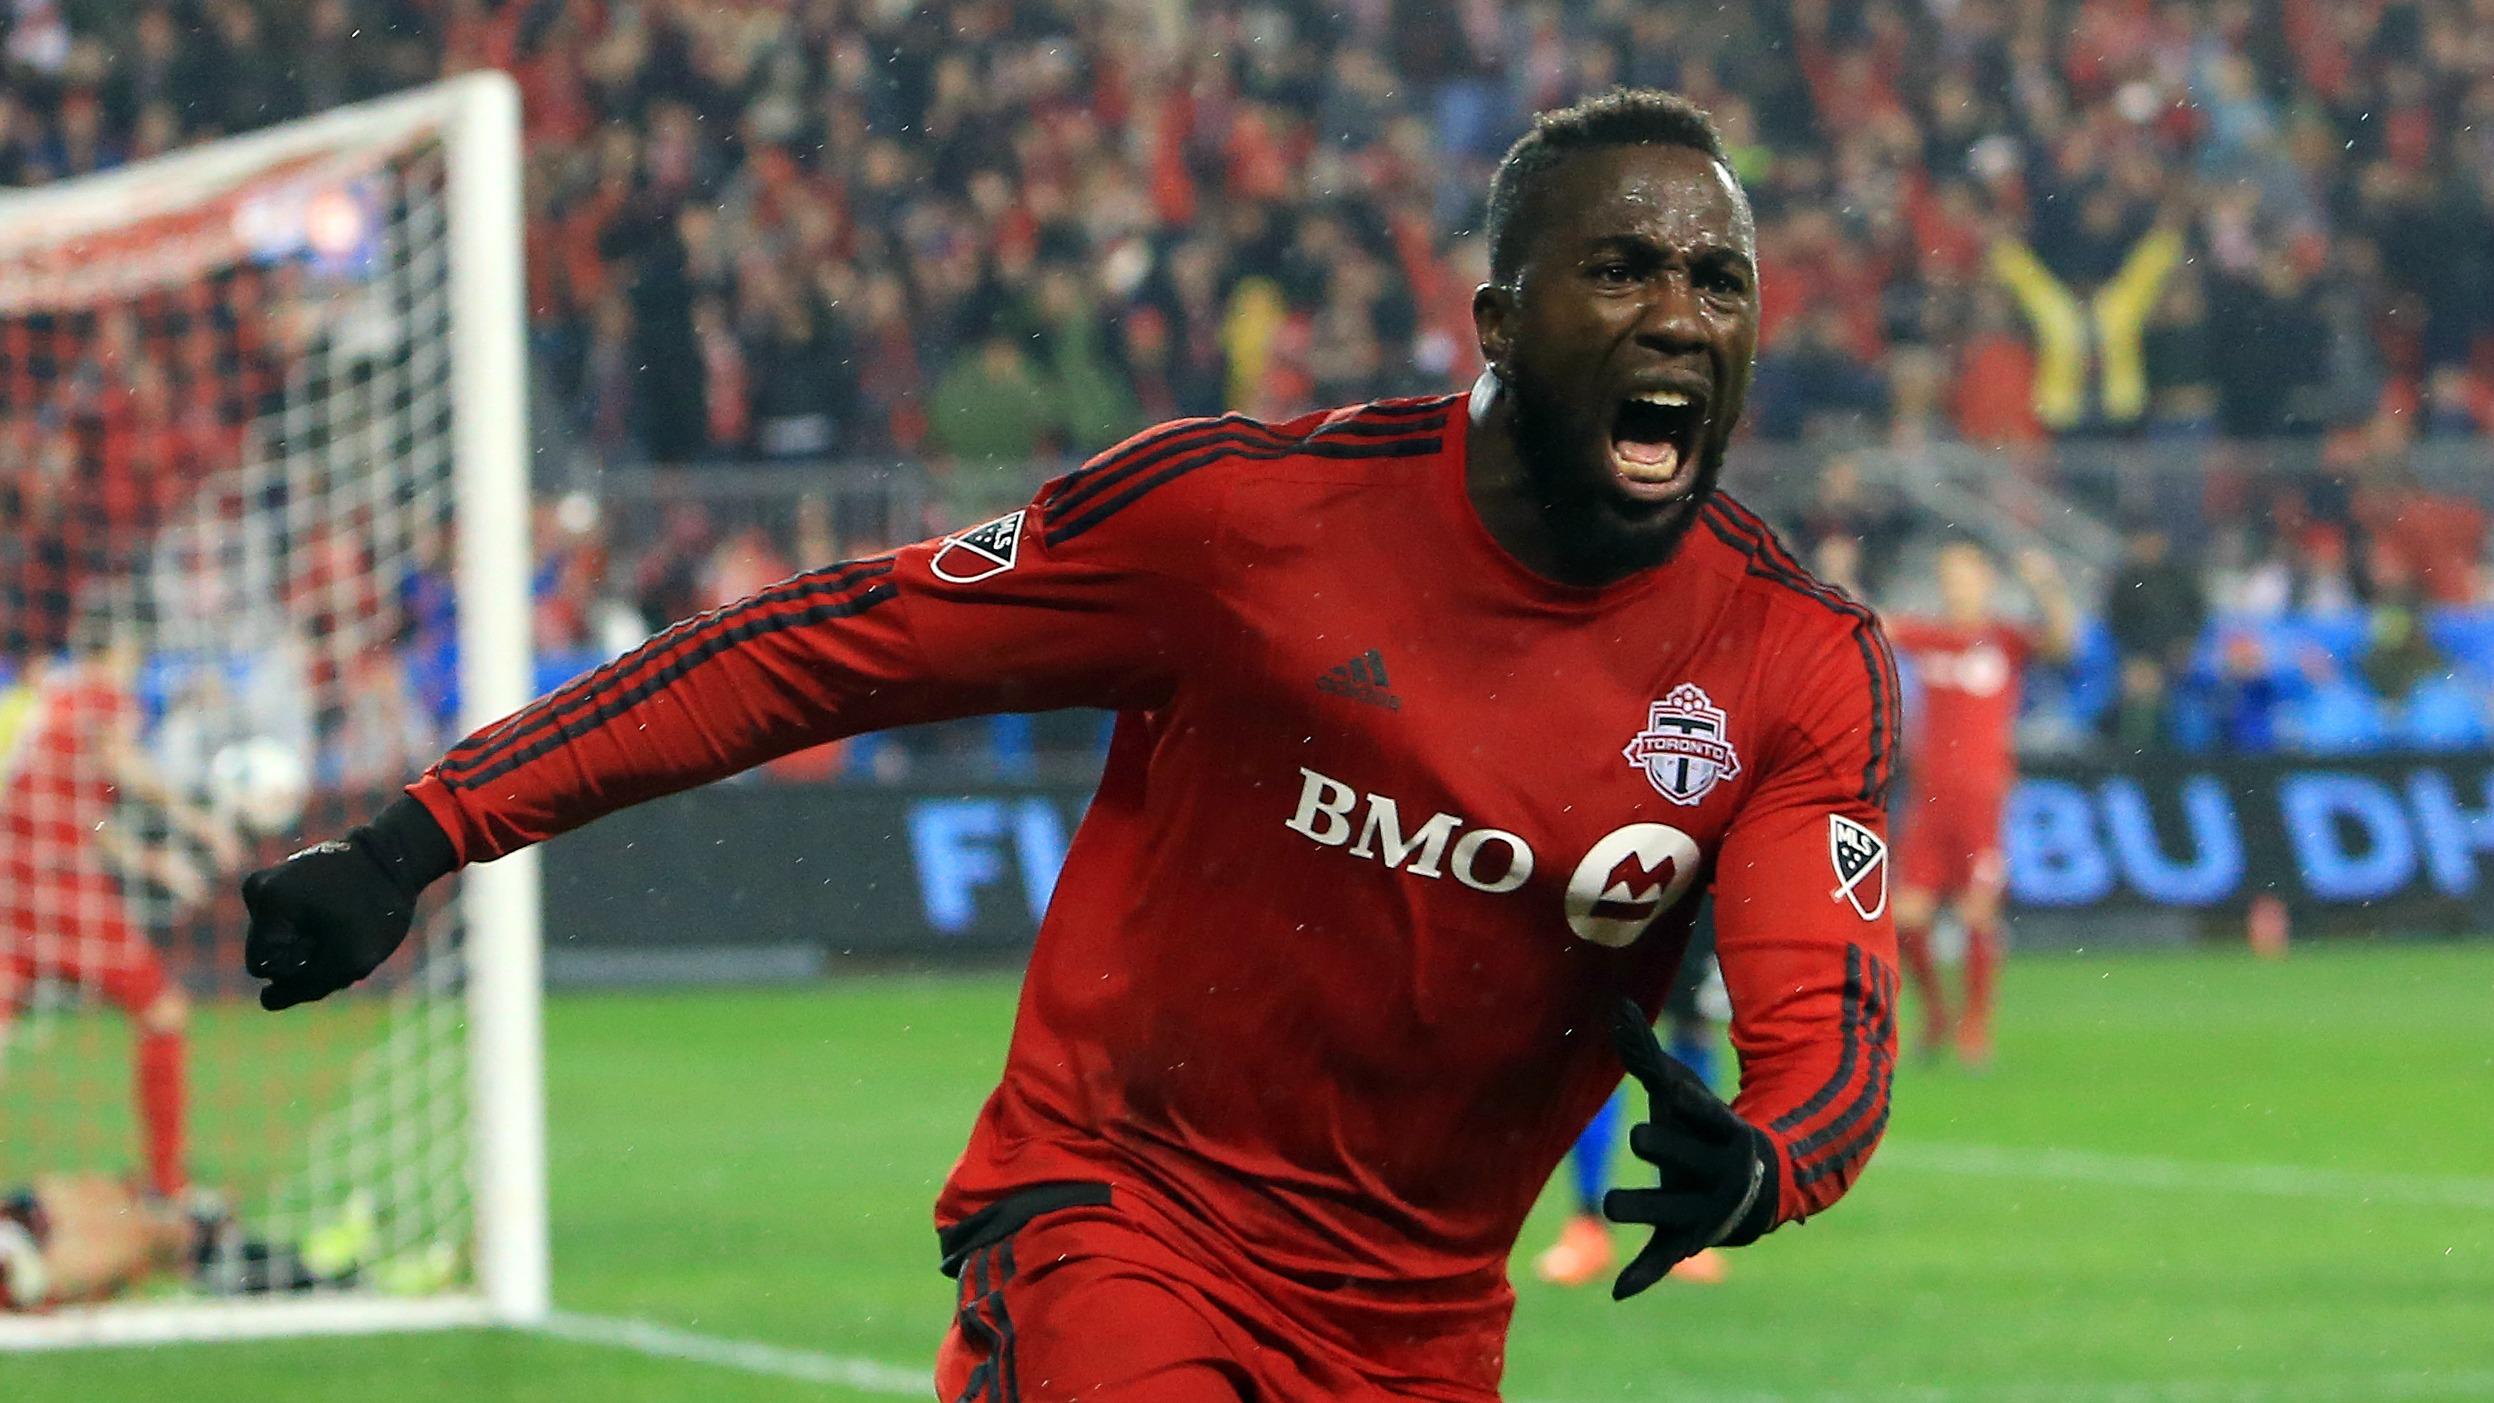 Jozy Altidore is playing better than ever and he put Toronto FC in MLS Cup